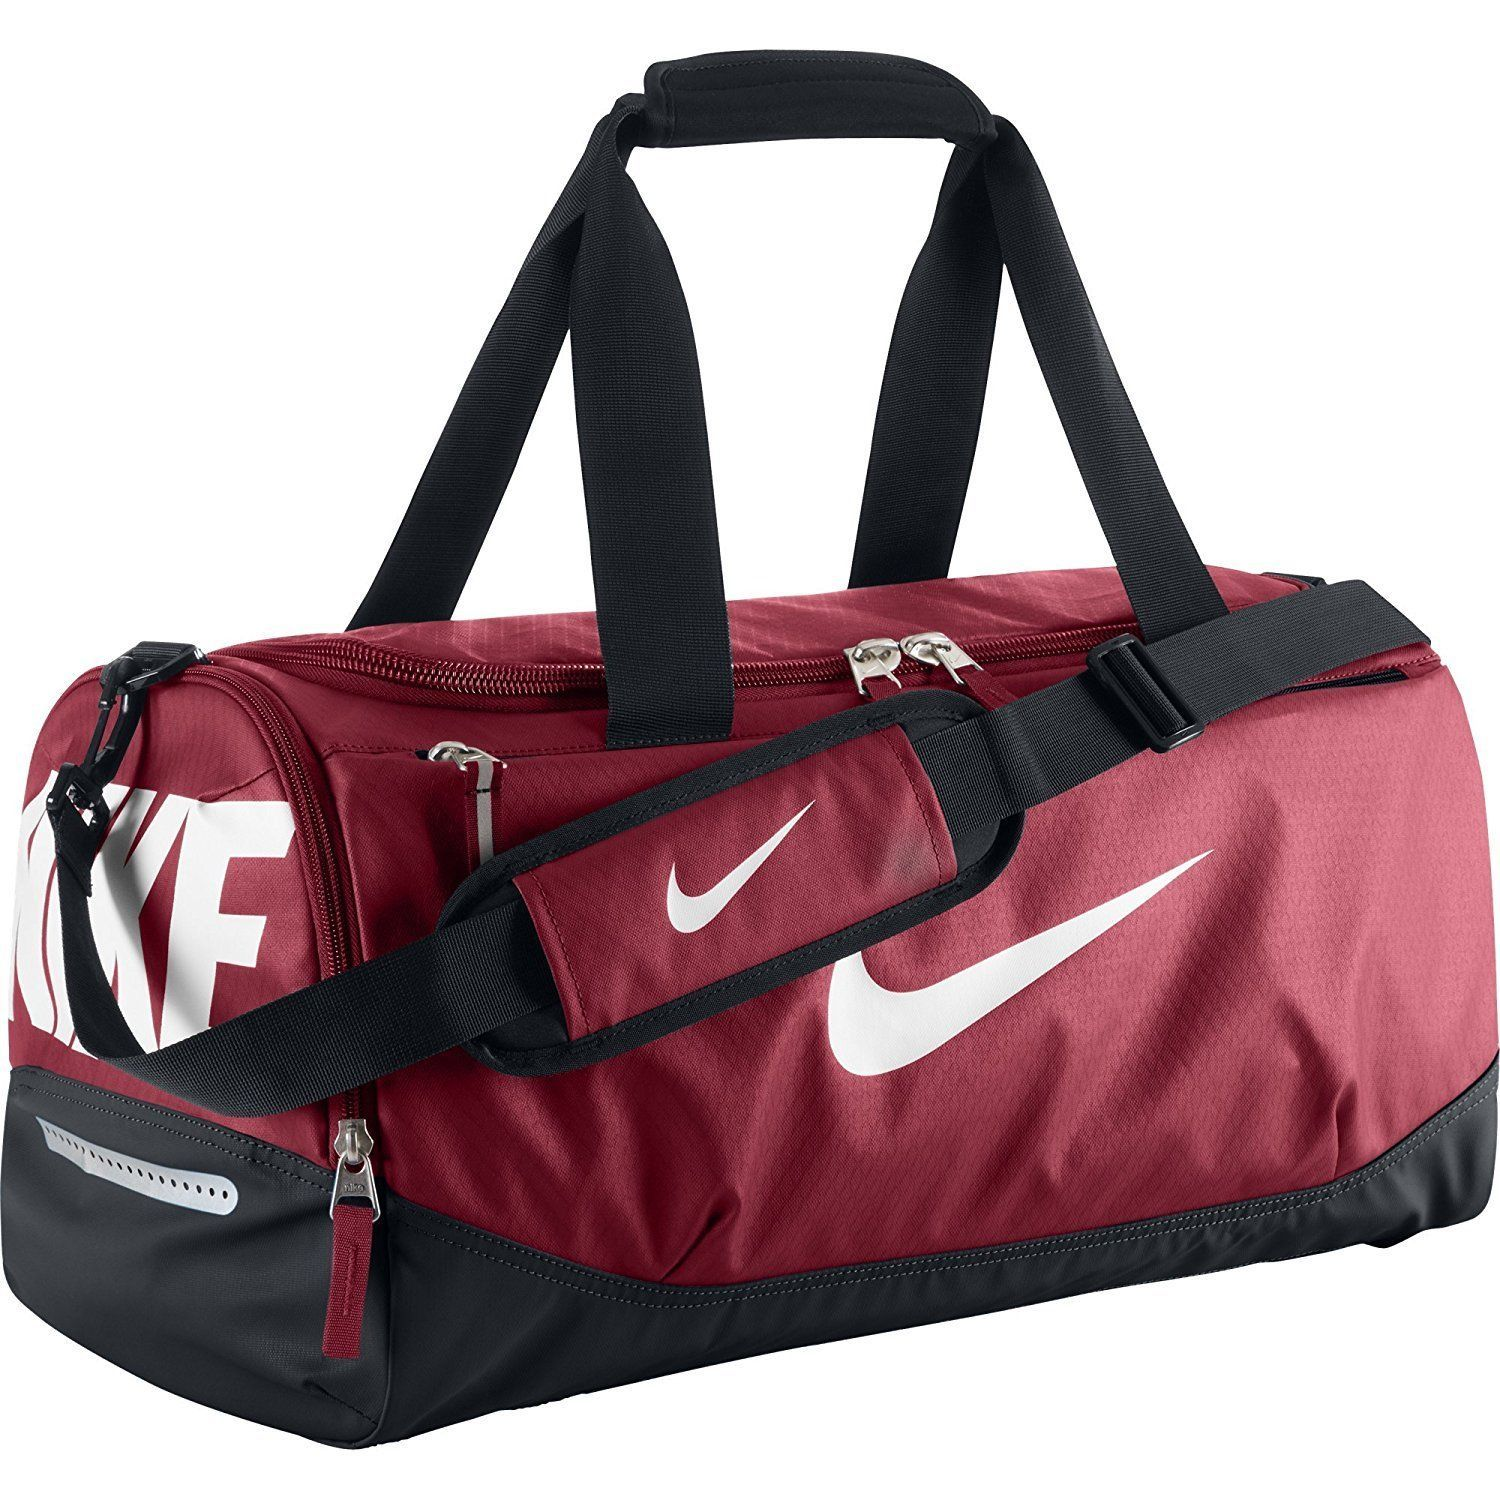 Nike Team Training Max Air Small Duffle Bag, and 33 similar items. S l1600 5a6eb1fdc0